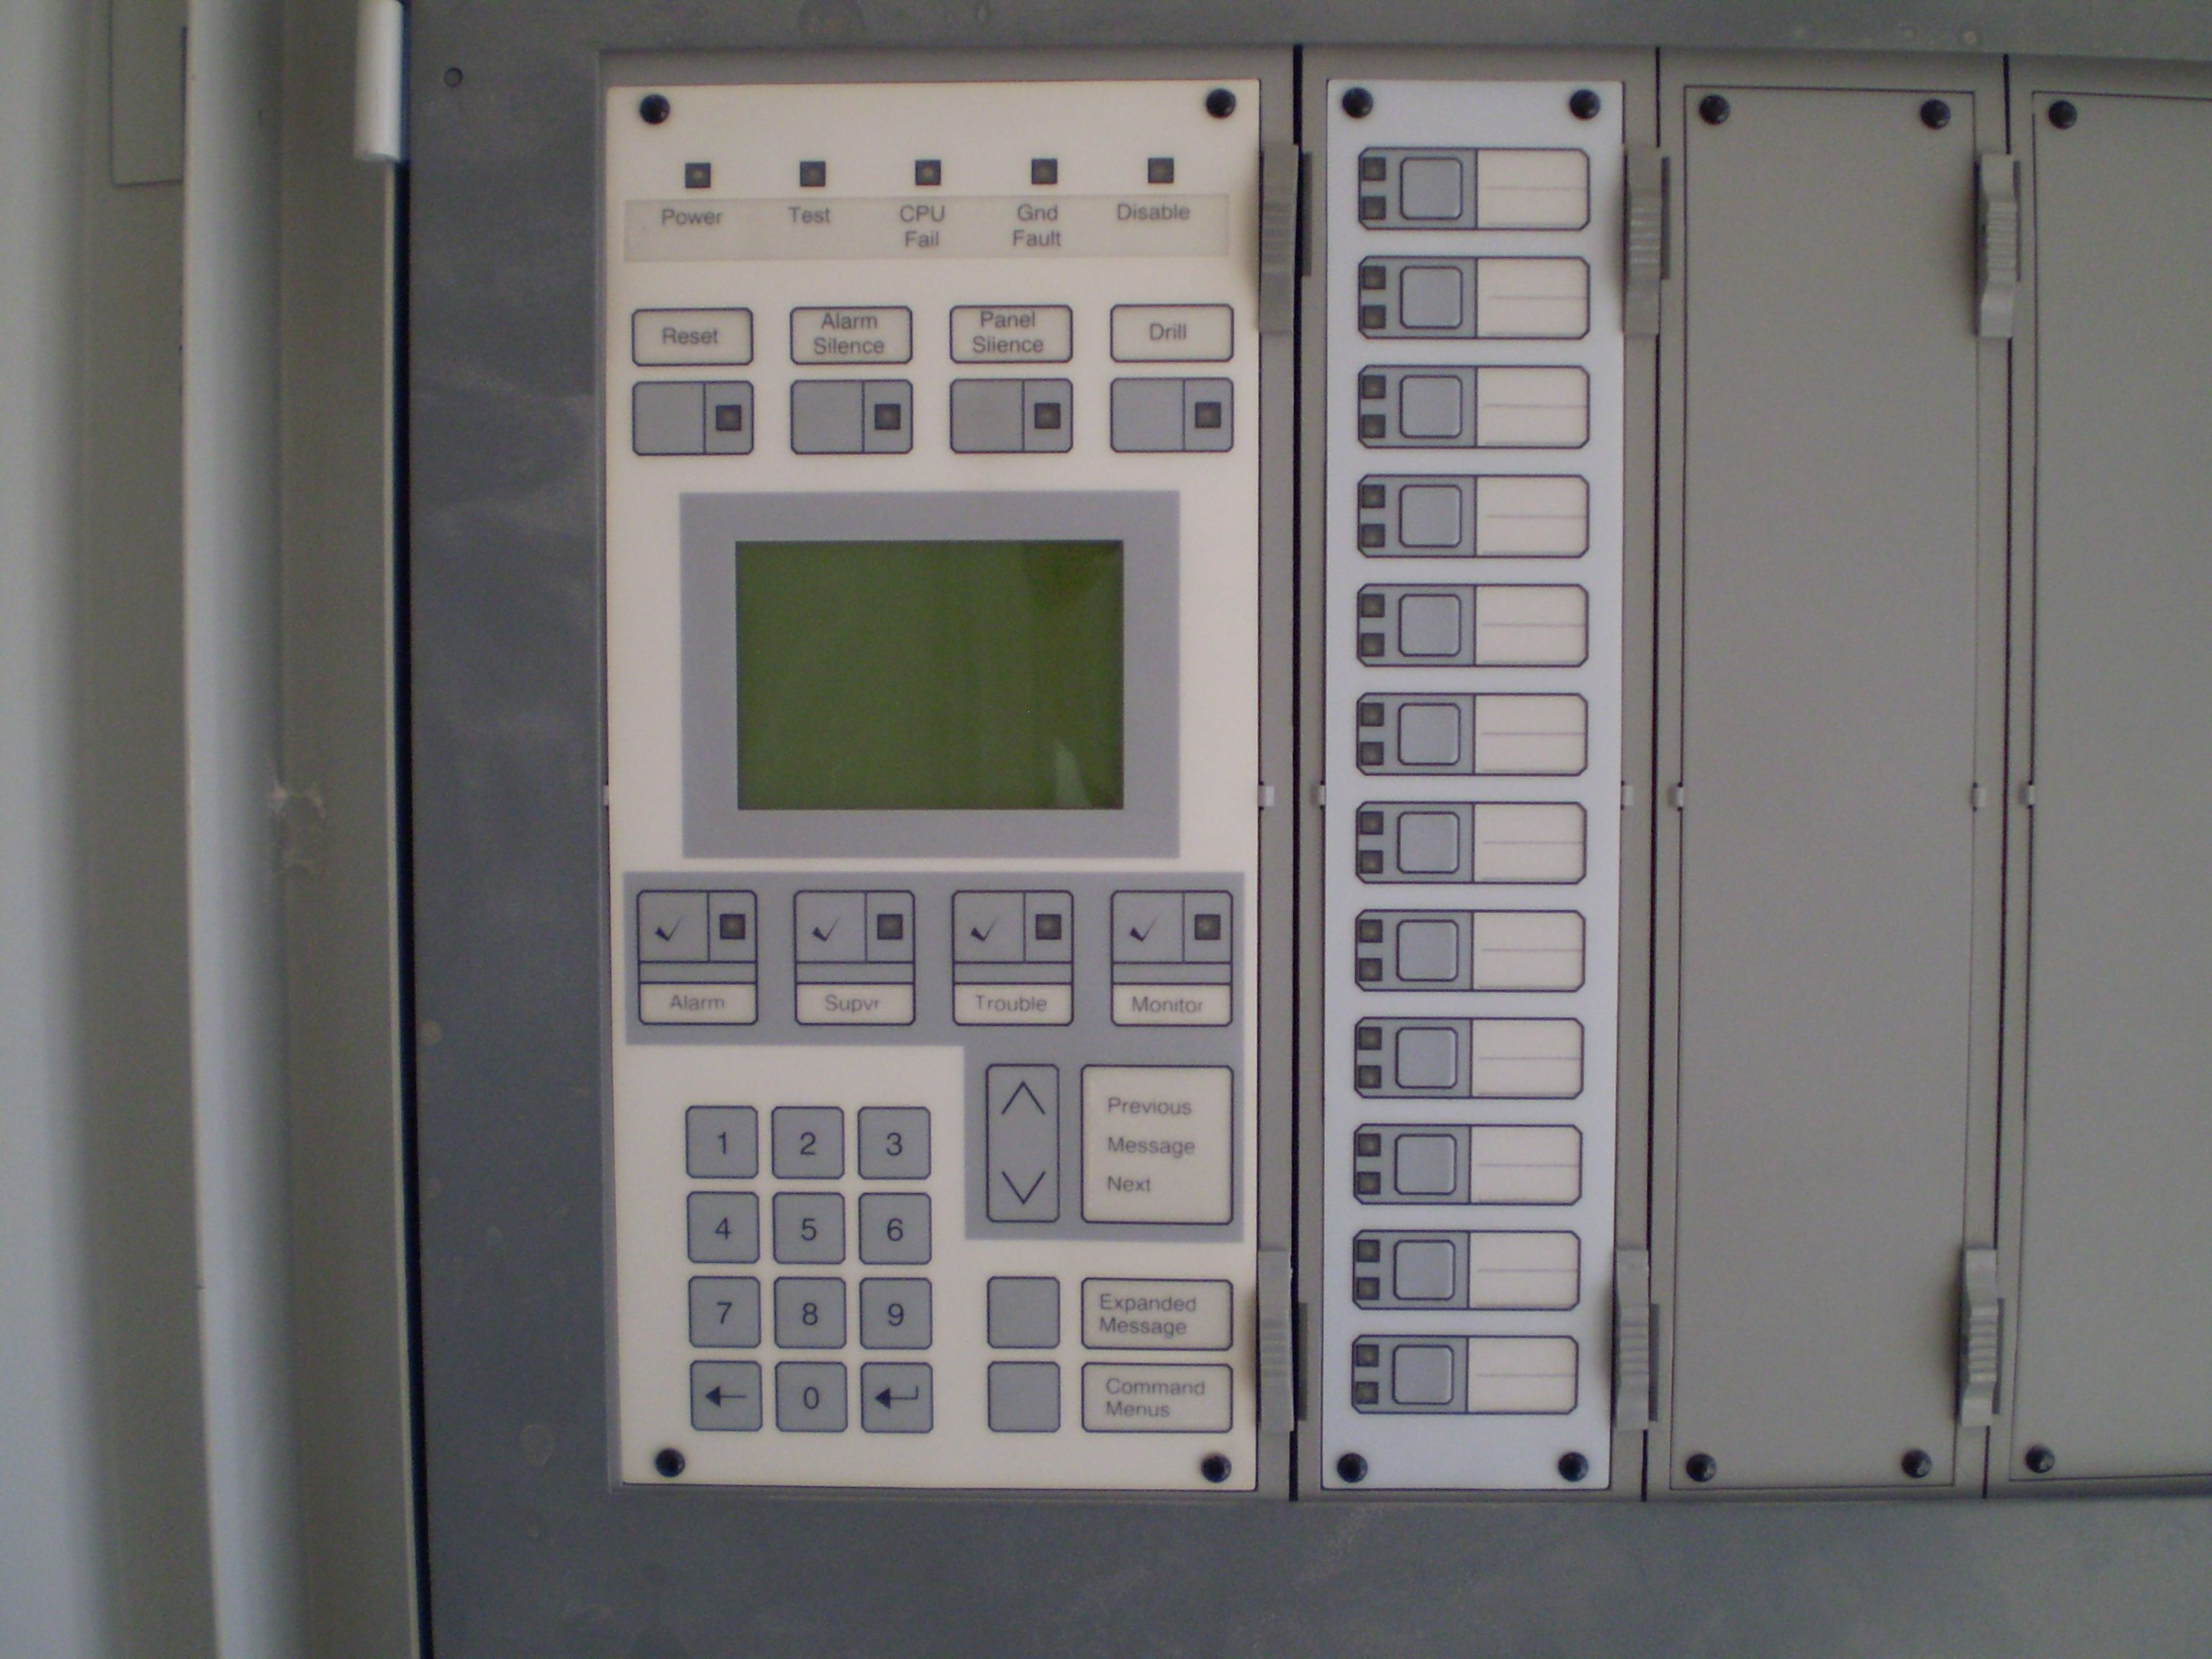 Siemens Fire Alarm Control Panel Facp Danfoss Controls Wiring Diagram Vfd During Commissioning